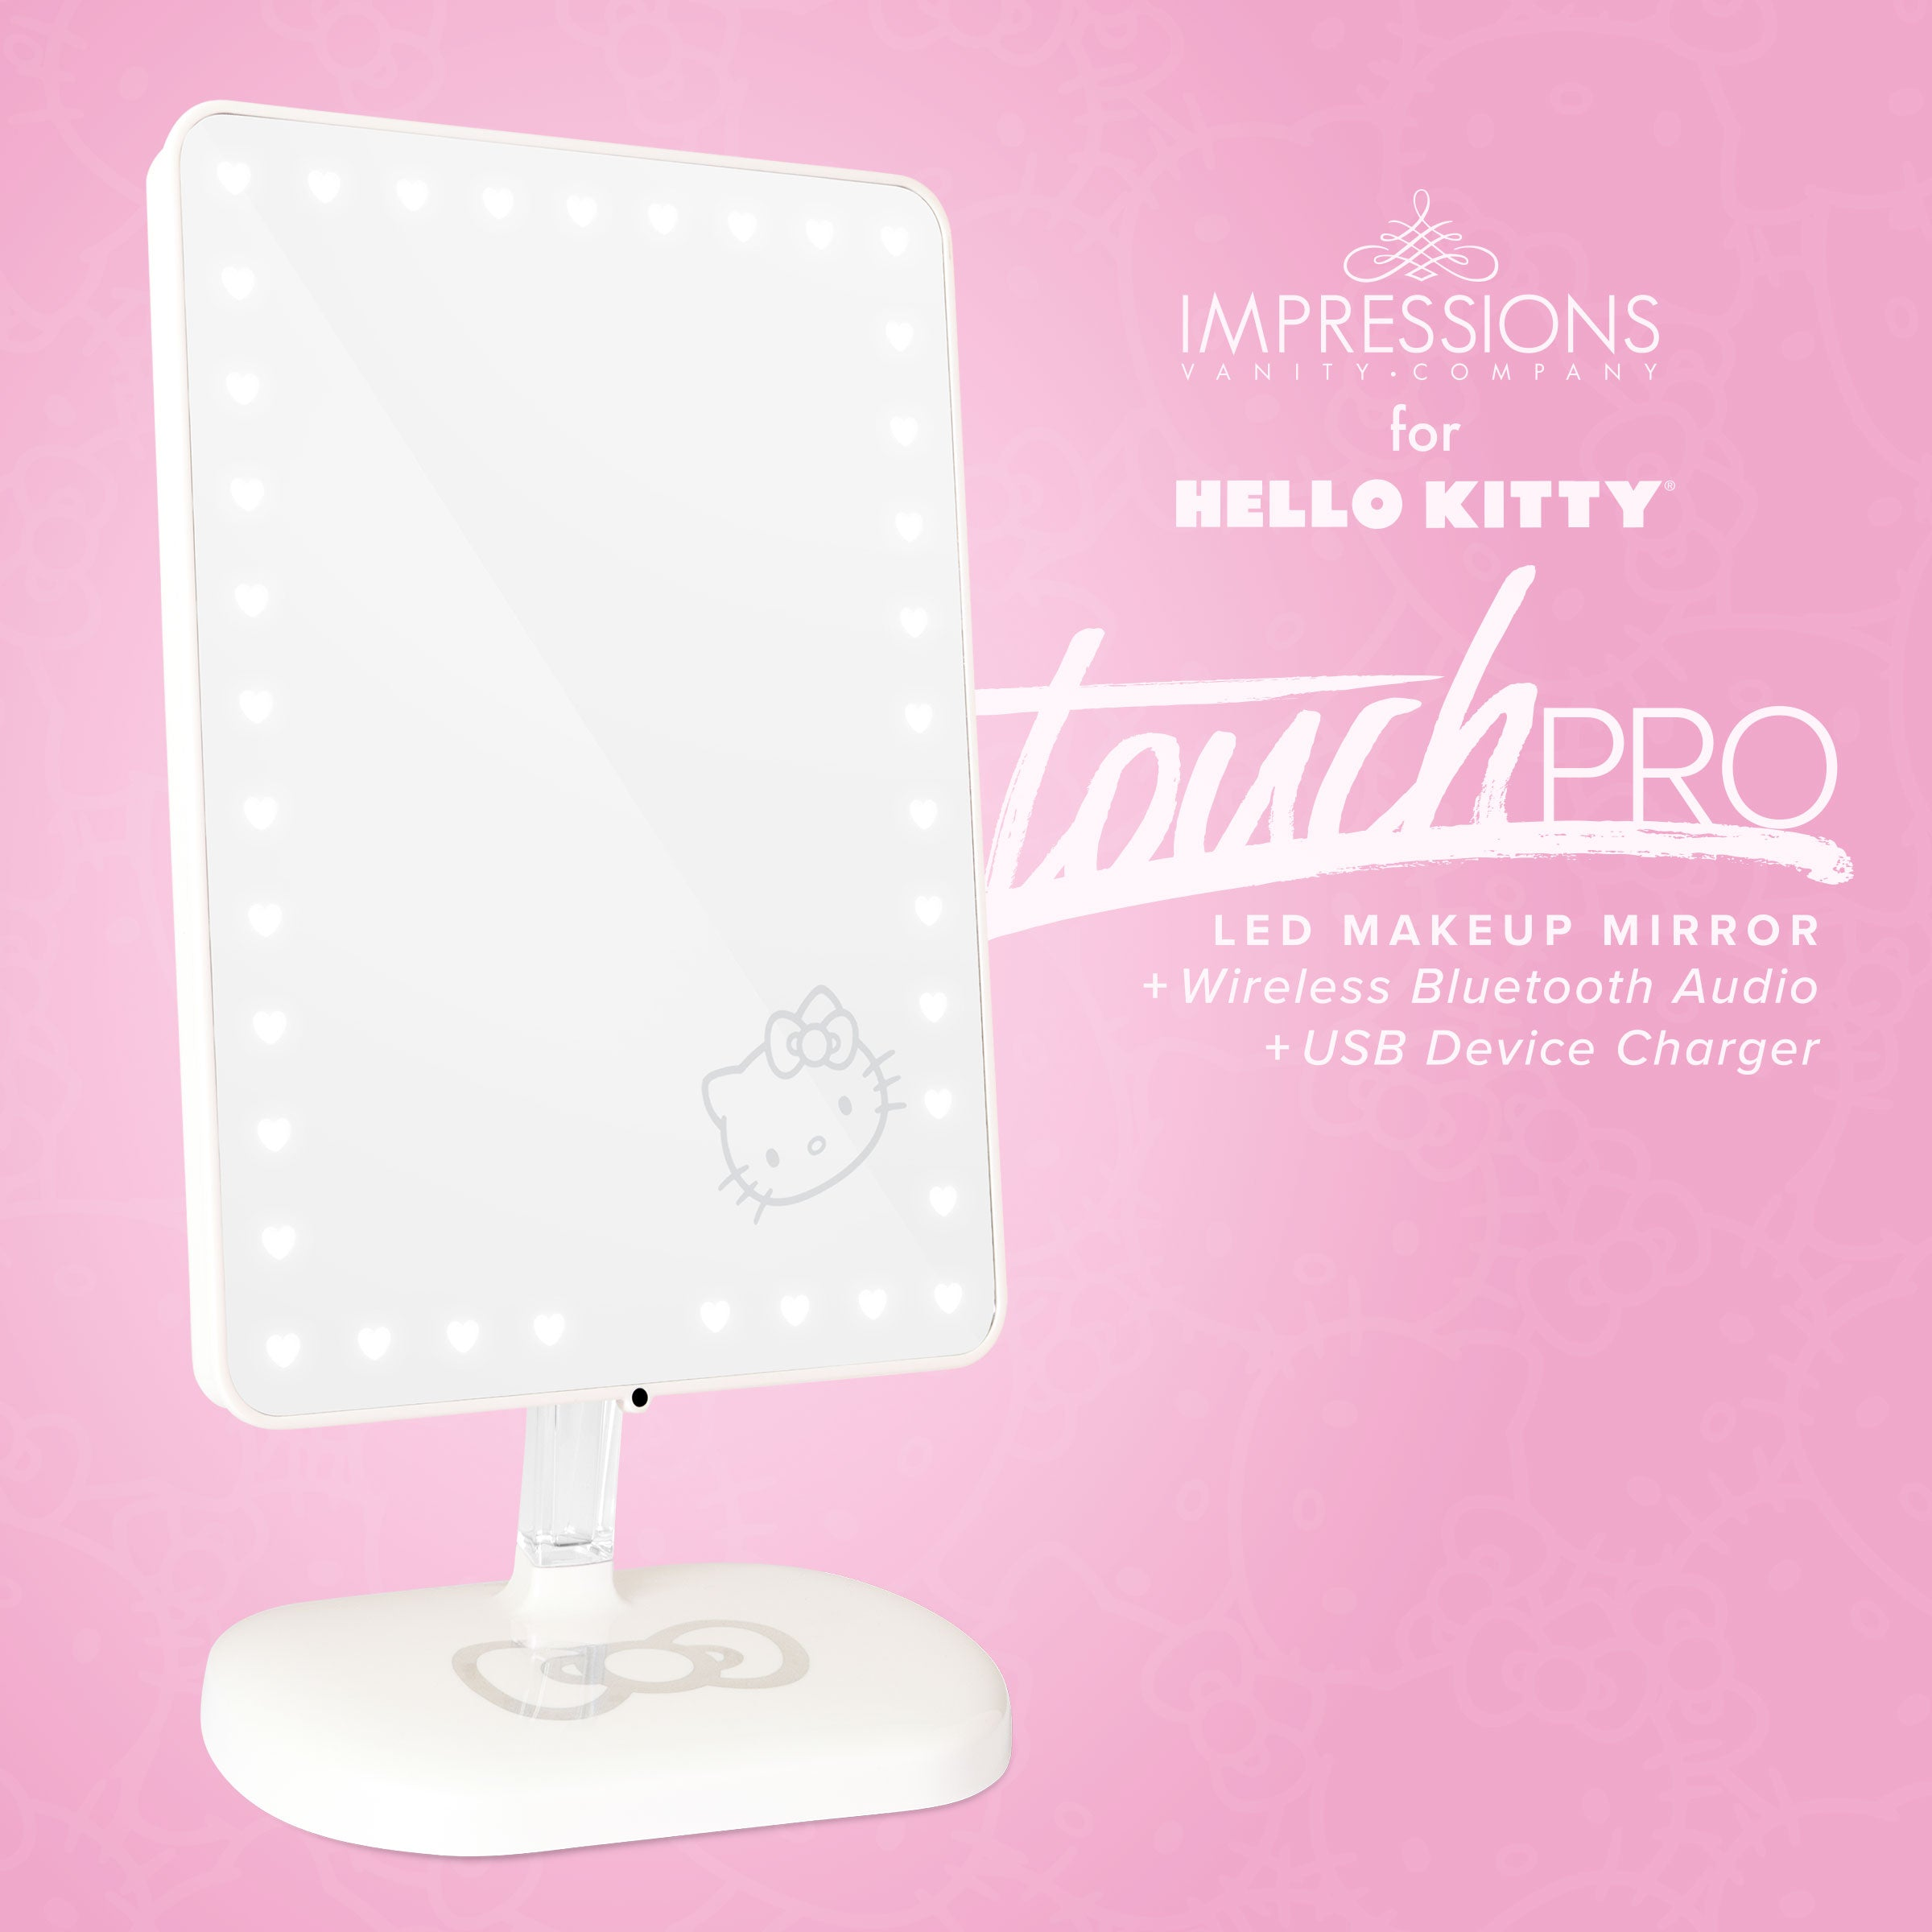 Hello Kitty Edition Touch Pro Led Makeup Mirror With Bluetooth Audio